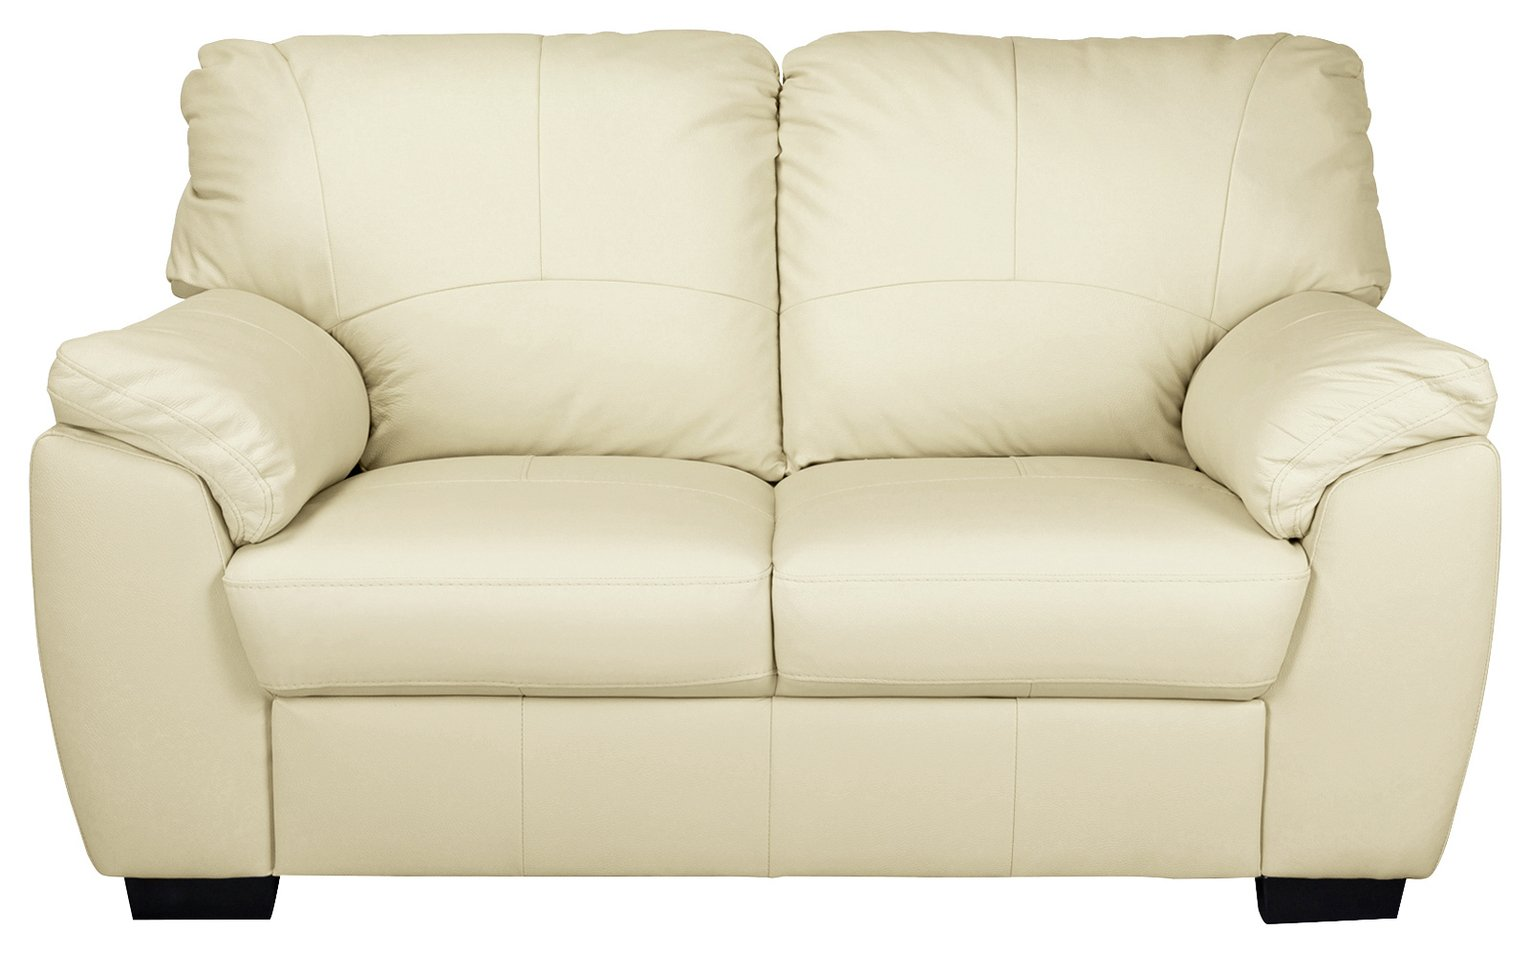 argos home milano 2 seater leather sofa ivory 3592584. Black Bedroom Furniture Sets. Home Design Ideas